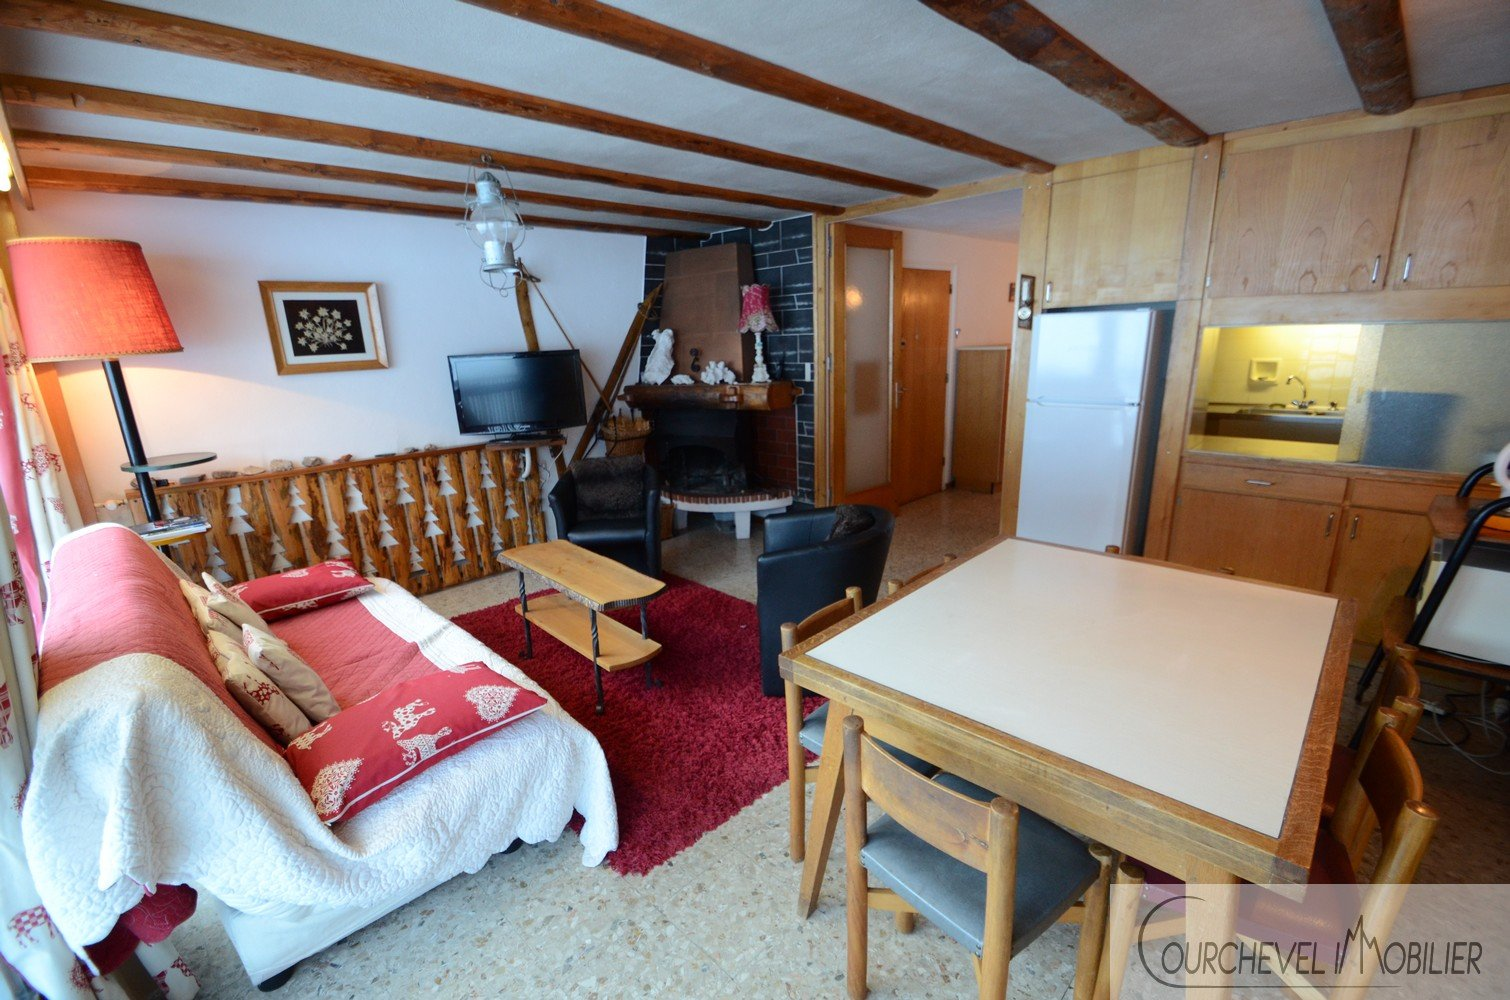 Verkoop Appartement - Courchevel Le Praz